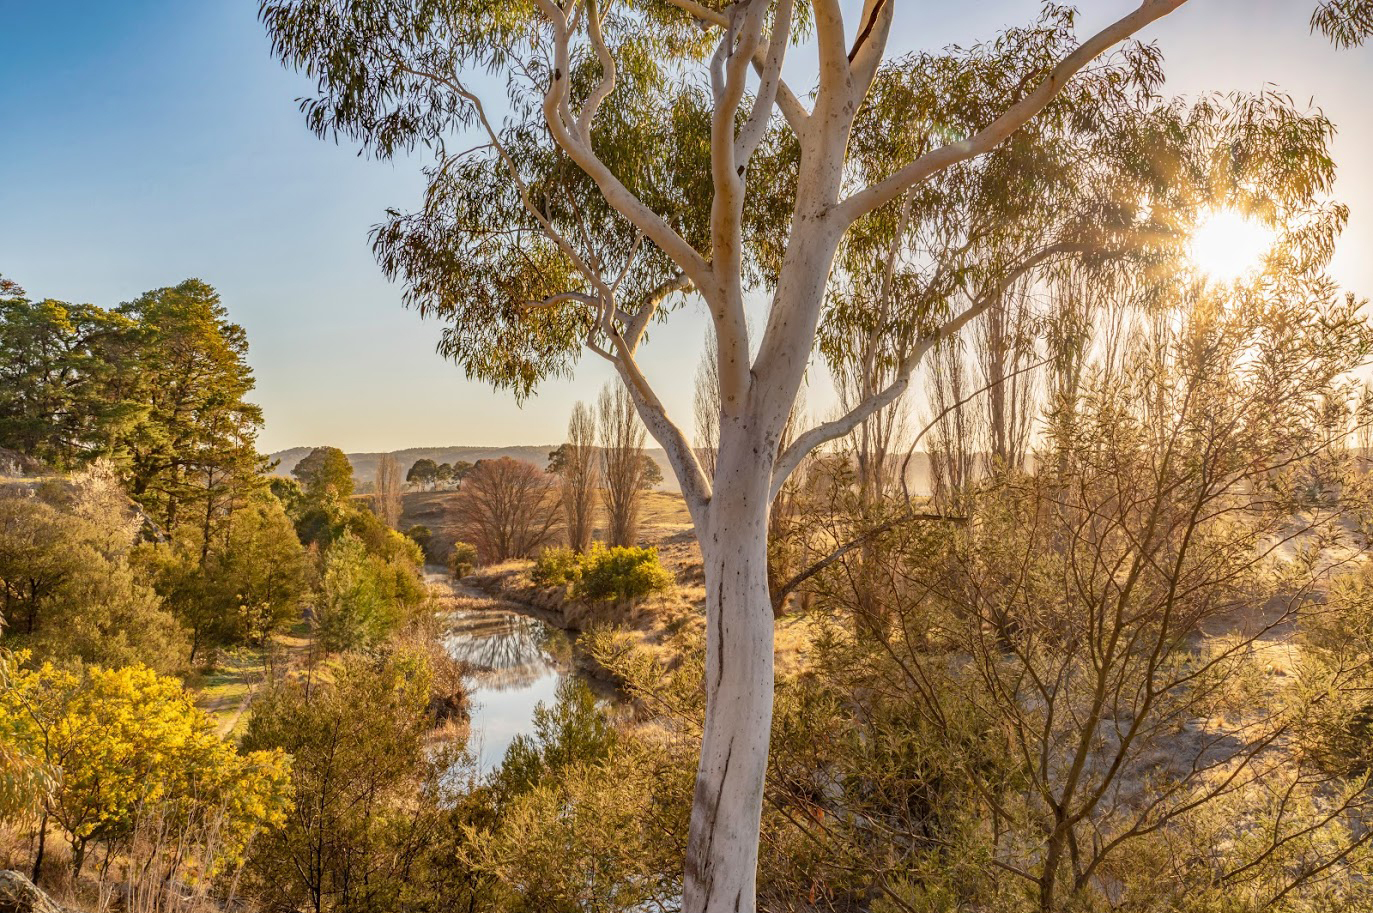 Picture of a golden sunlit landscape in Queanbeyan area. Gumtrees in foreground, blue sky and river in background.